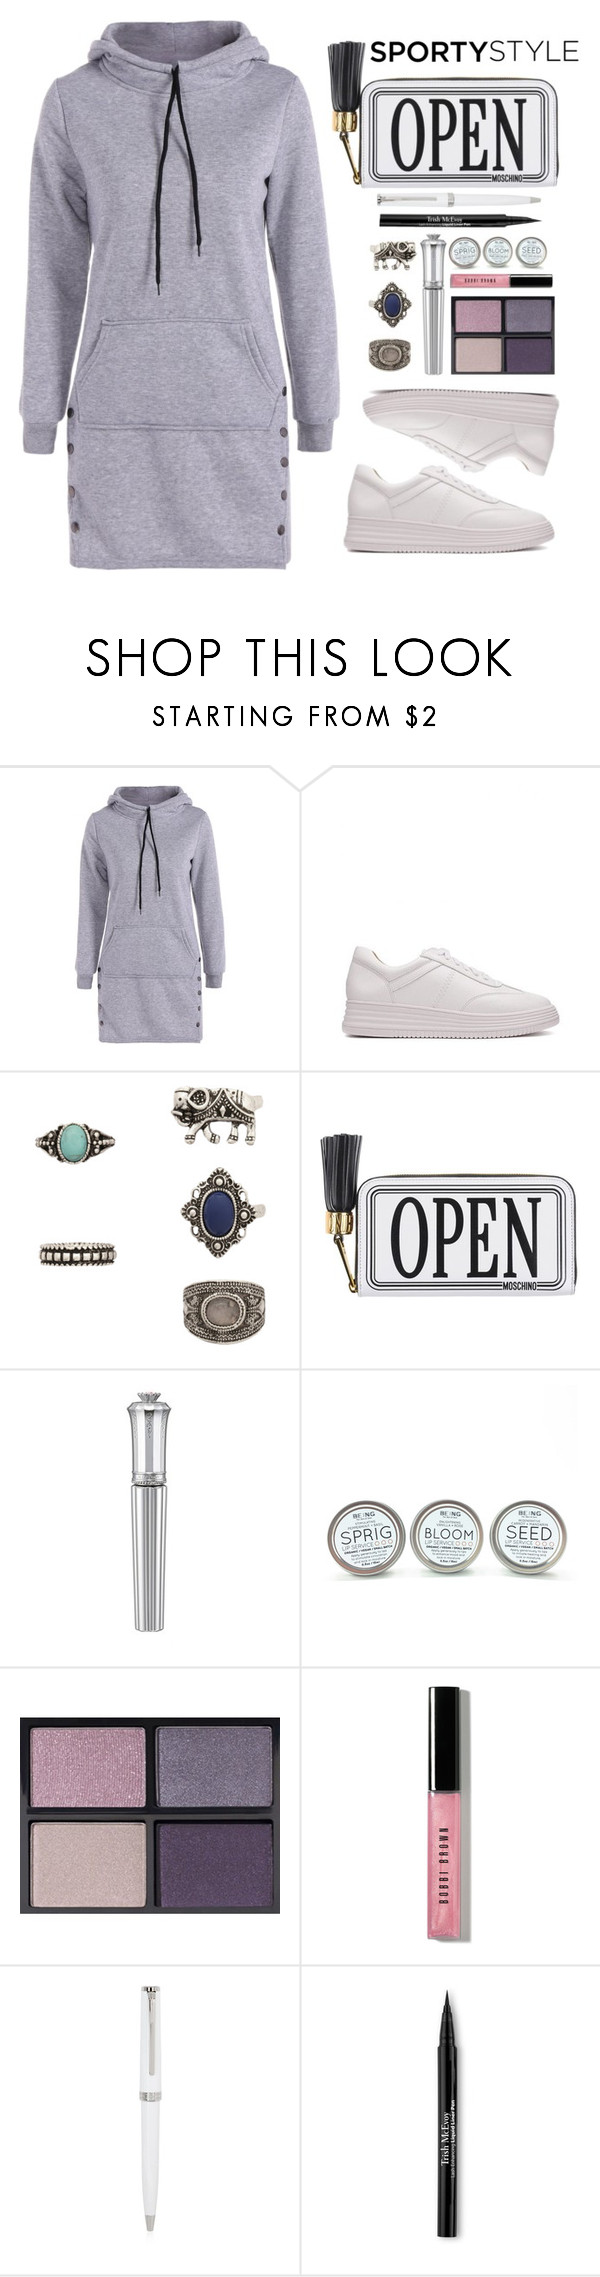 """Sporty Style. RG"" by simona-altobelli ❤ liked on Polyvore featuring Moschino, Morgan Lane, Tom Ford, Bobbi Brown Cosmetics, Montblanc and Trish McEvoy"